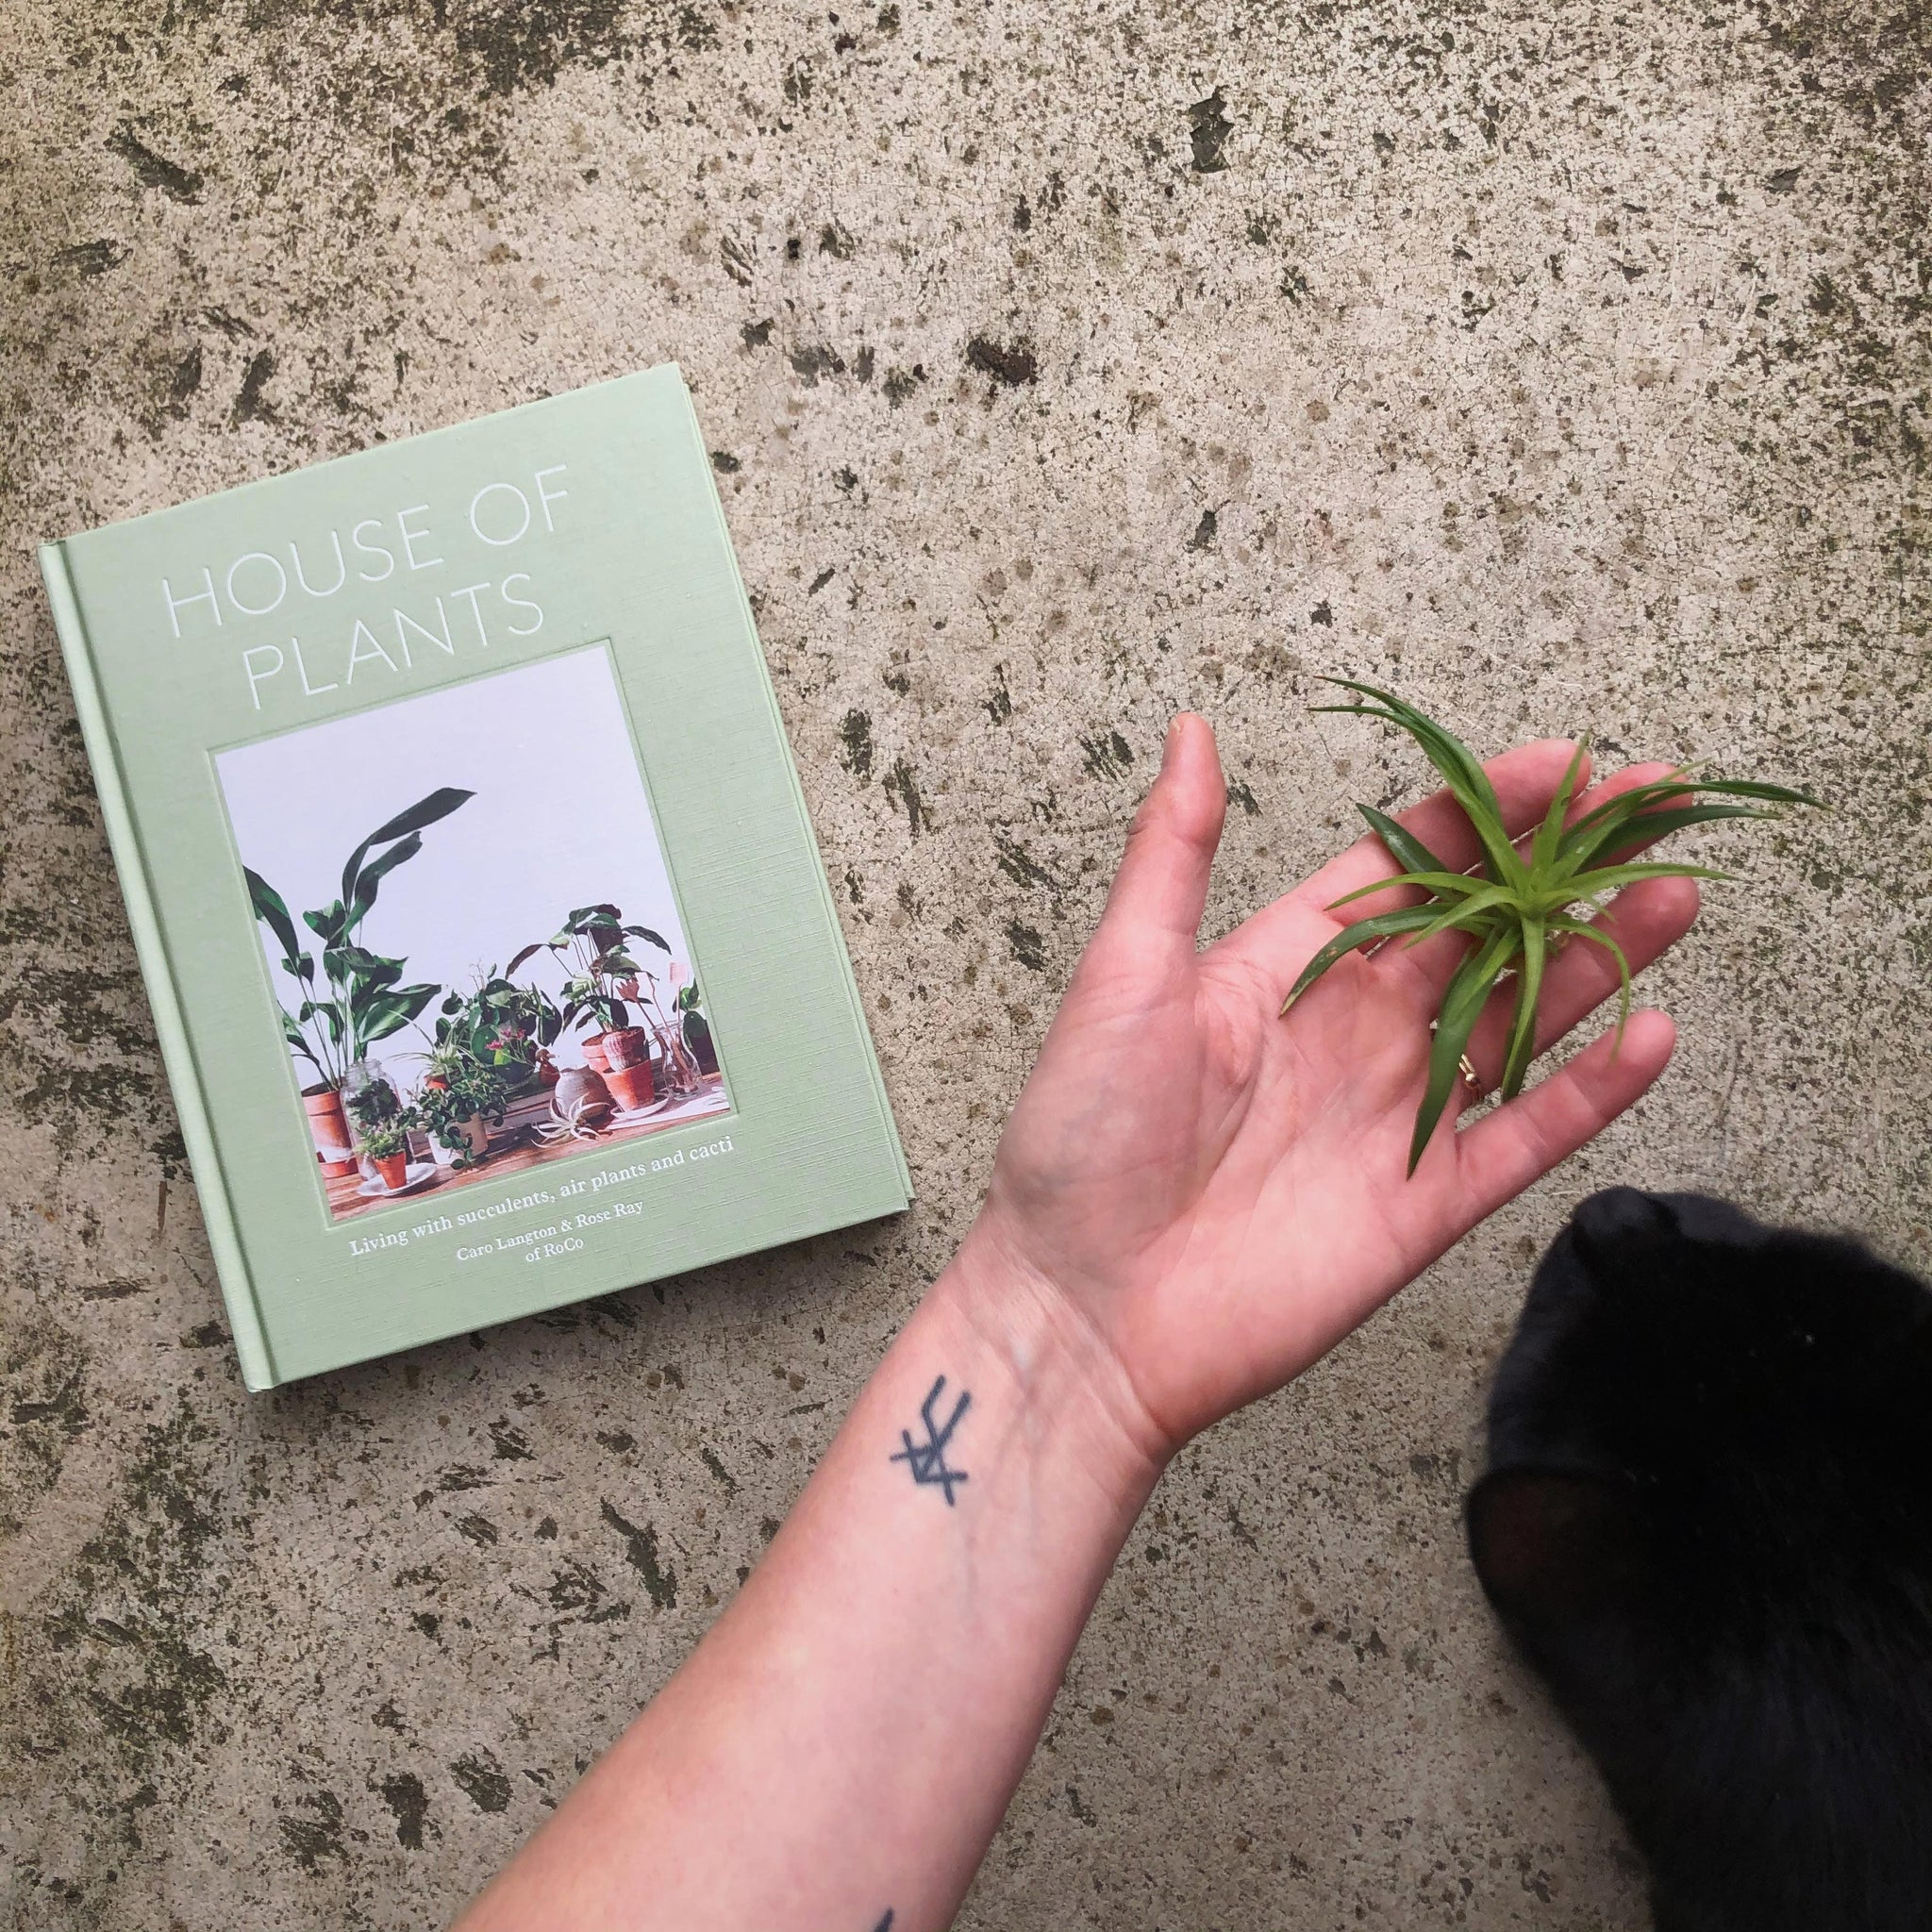 Image of a white skinned hand, holding a small plant. To the left, a book called House of Plants is visible, to the right, a black cat is sniffing the hand.